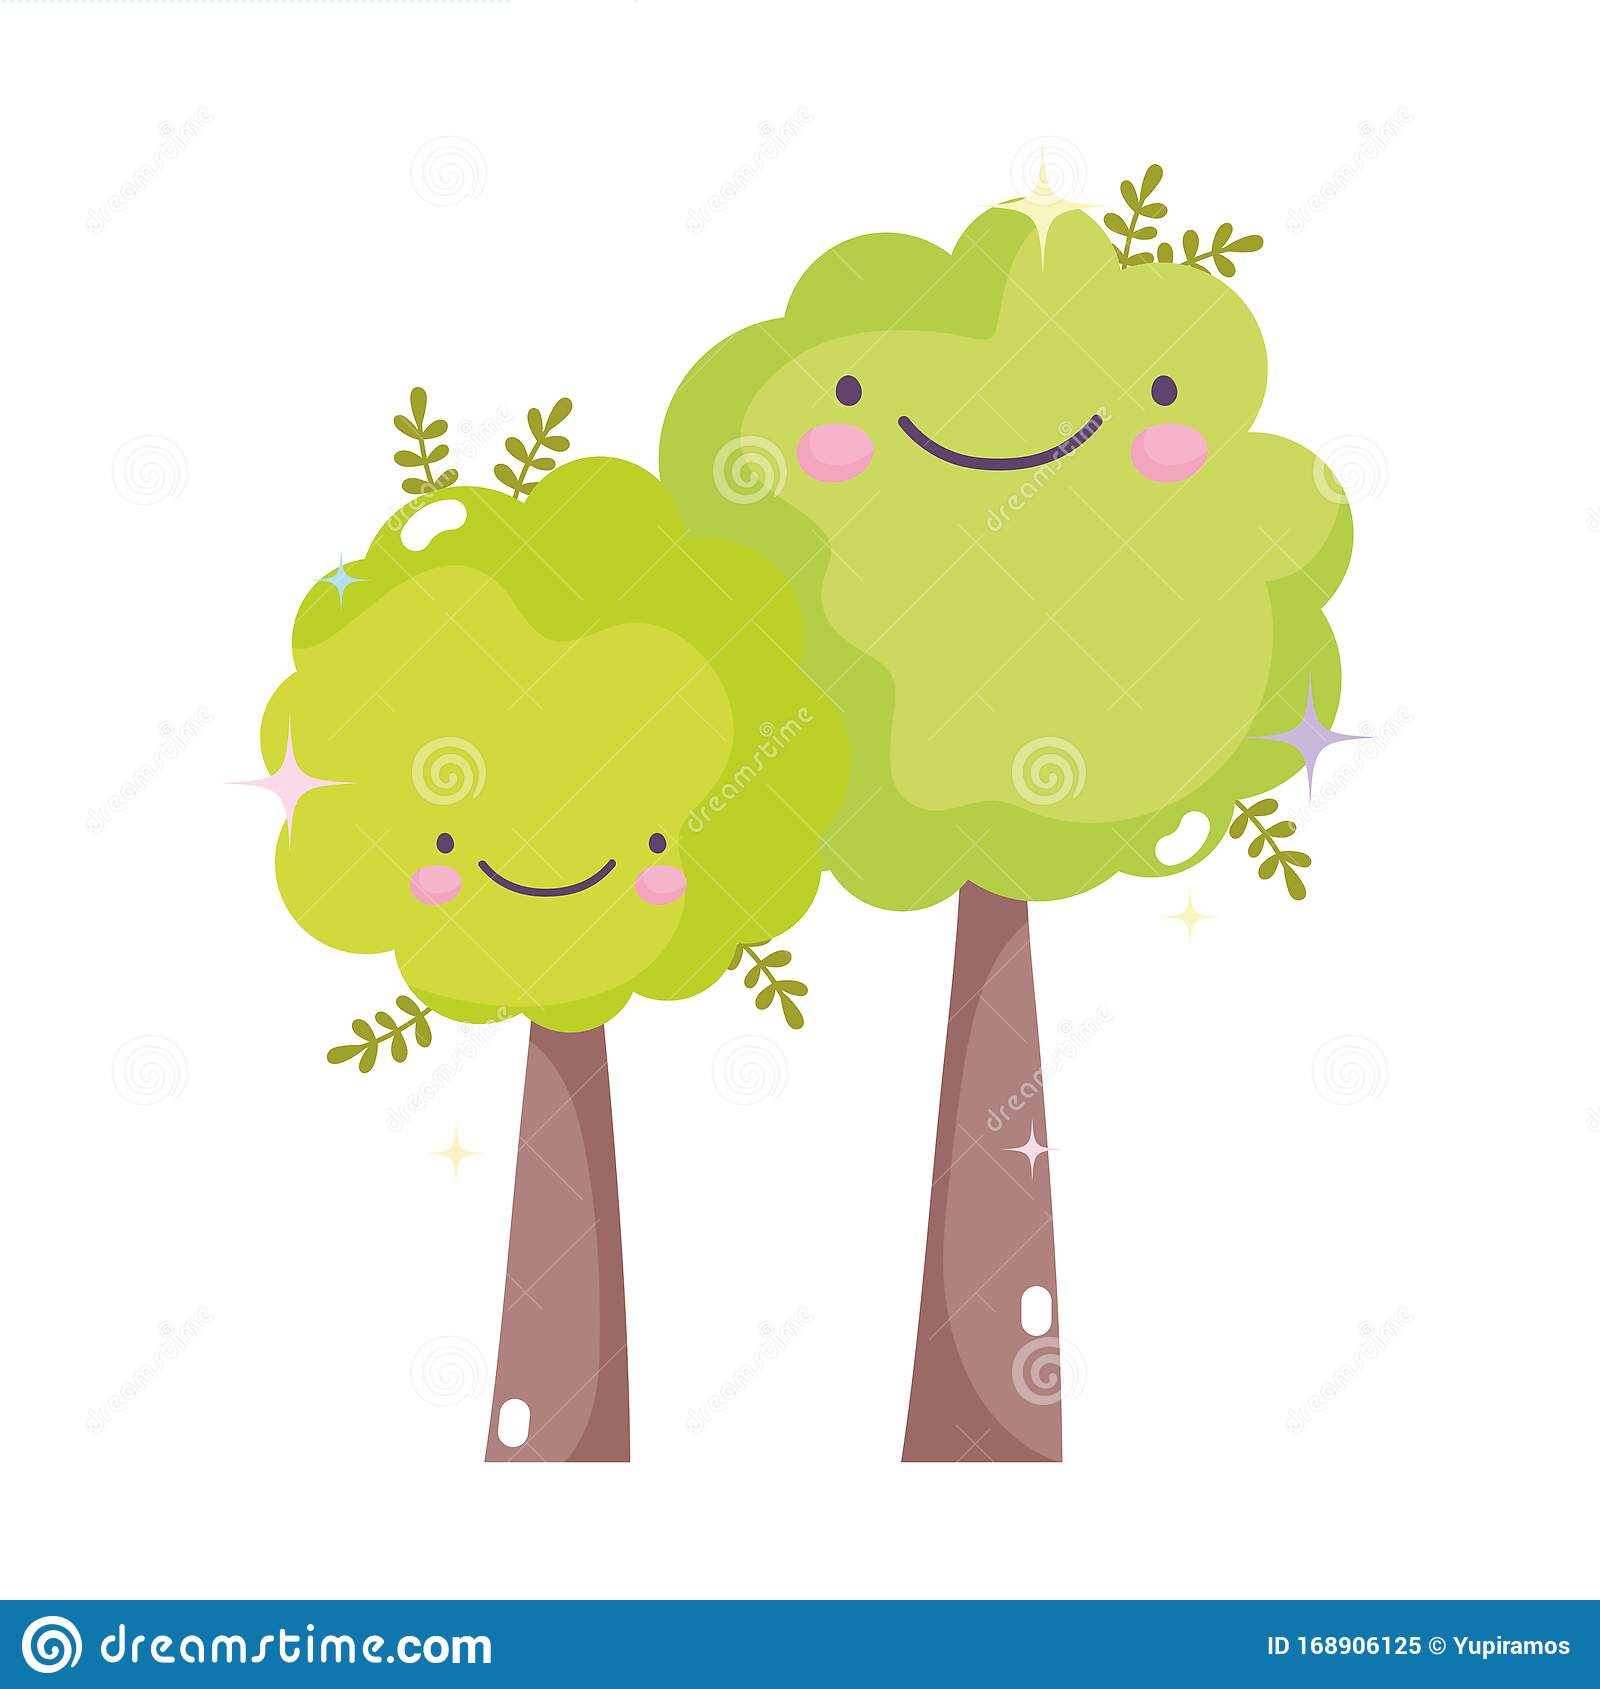 Kawaii Gardening Cartoon Happy Trees Characters Stock Vector Illustration Of Characters Cute 168906125 Check out our cartoon tree selection for the very best in unique or custom, handmade pieces from our party décor shops. https www dreamstime com kawaii gardening cartoon happy trees characters kawaii gardening cartoon happy trees characters vector illustration image168906125